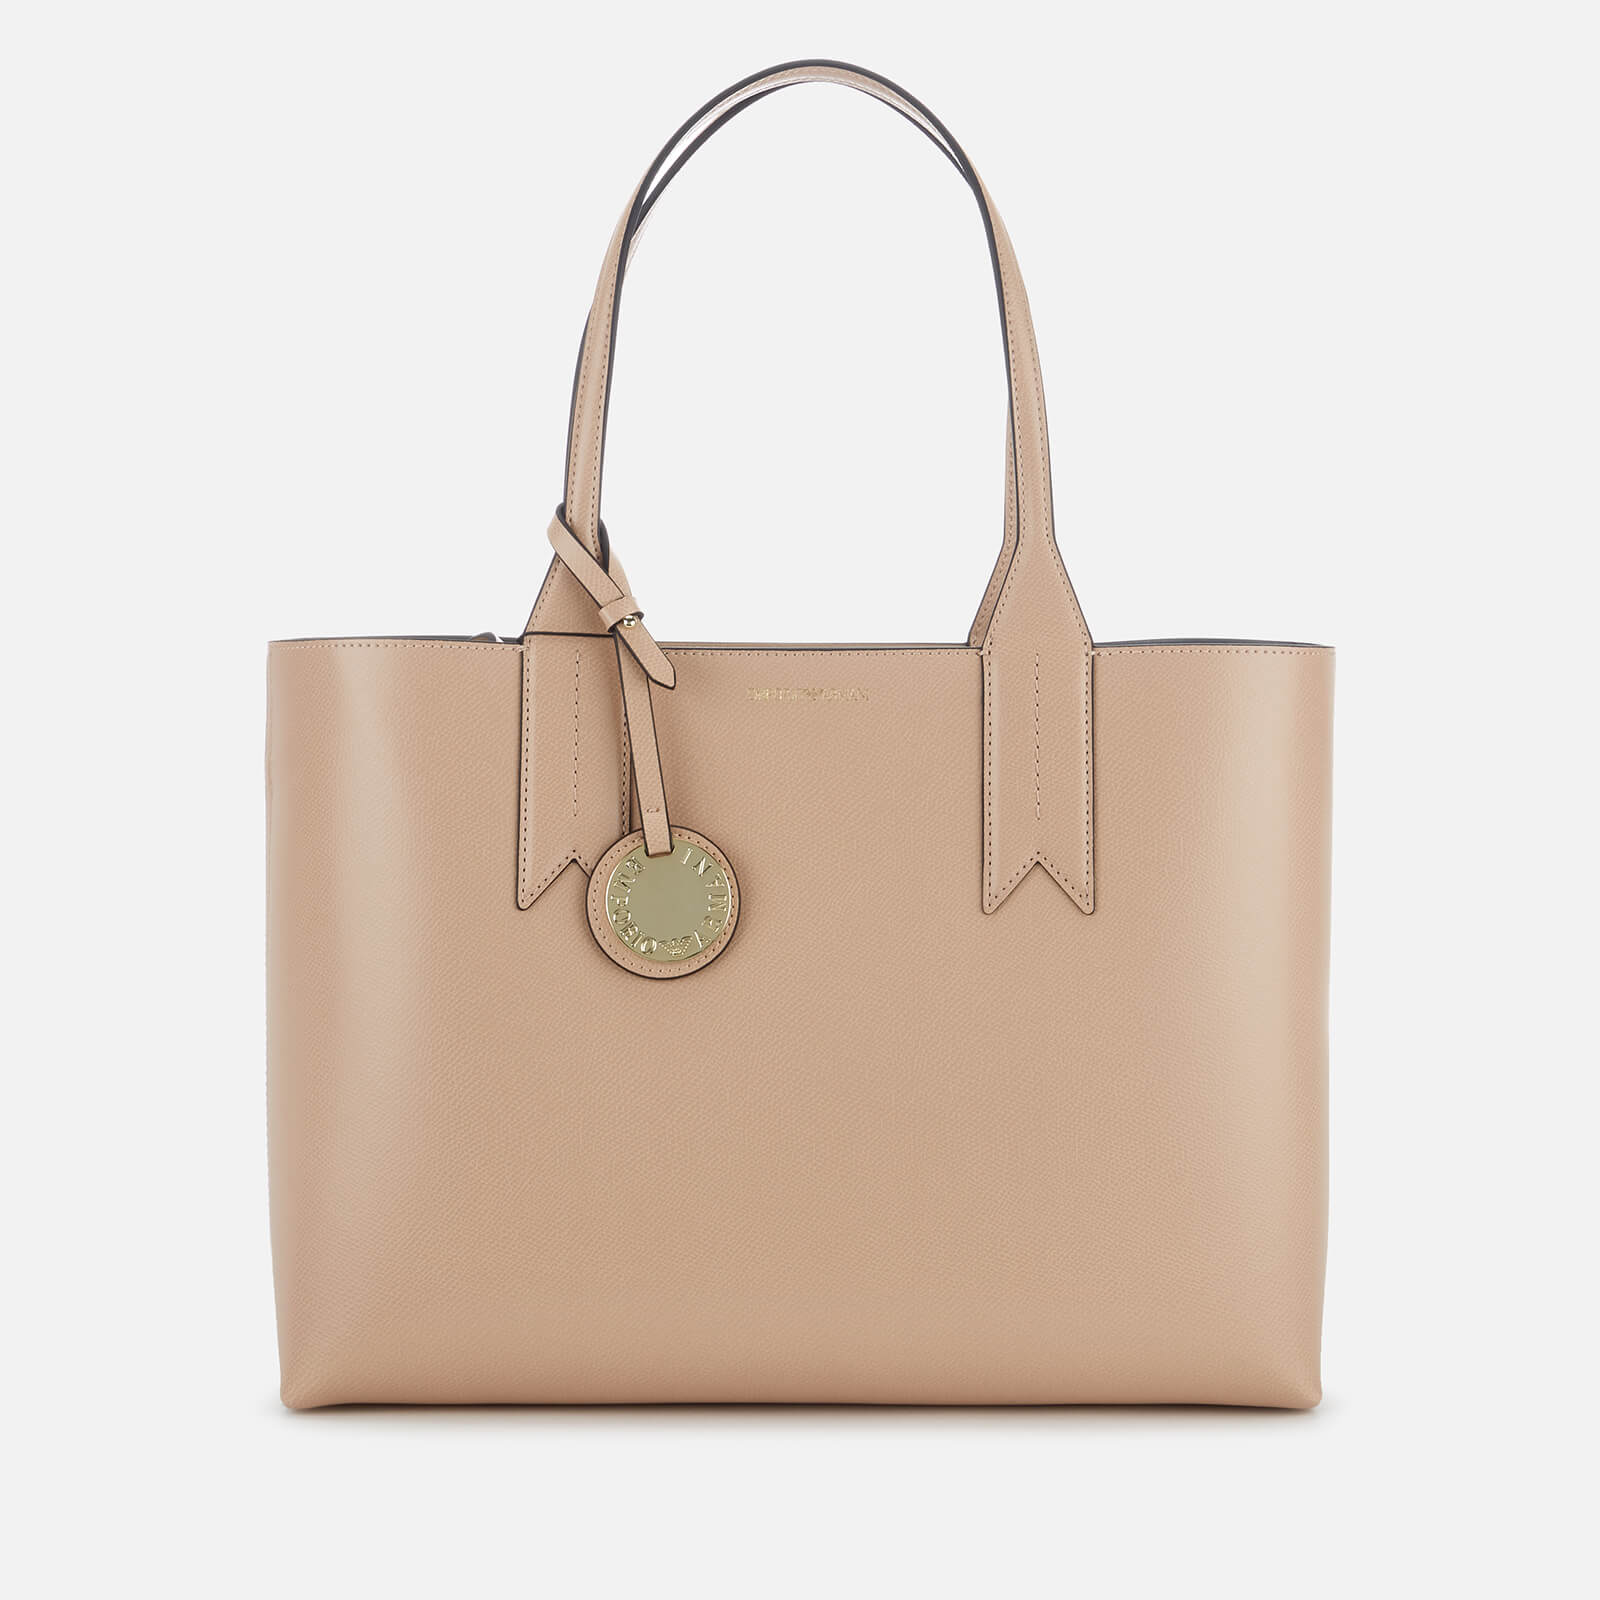 377ce8c3100f Emporio Armani Women s East West Tote Bag - Nude - Free UK Delivery over £50